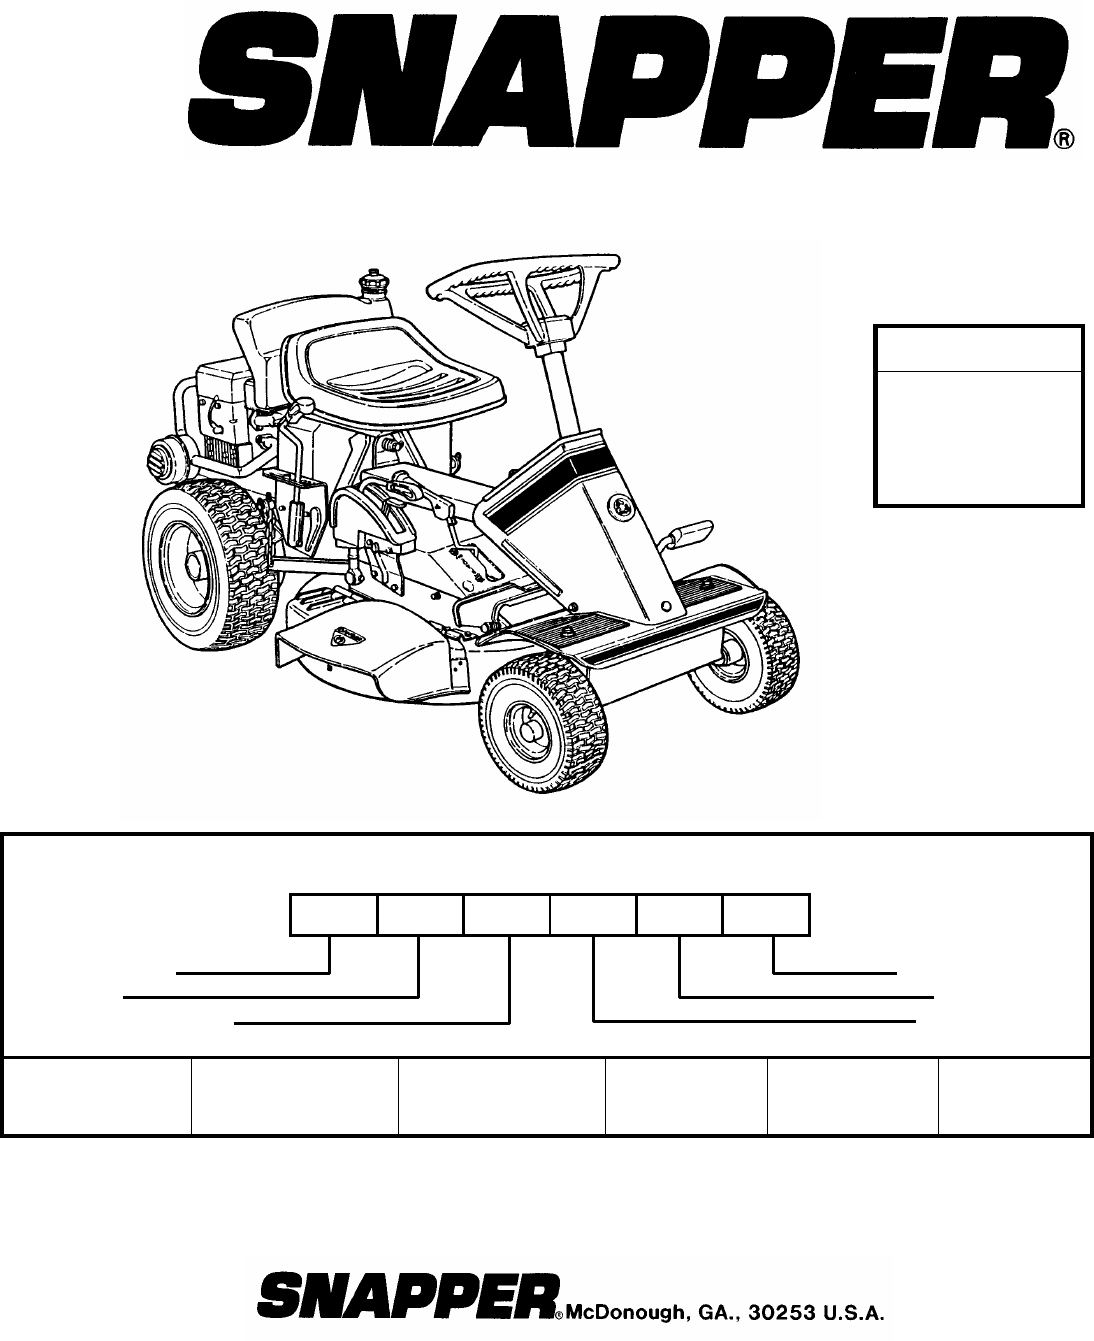 snapper sr1433 owners manual daily instruction manual guides u2022 rh testingwordpress co snapper mower service manual free downloads snapper lawn mower service manual